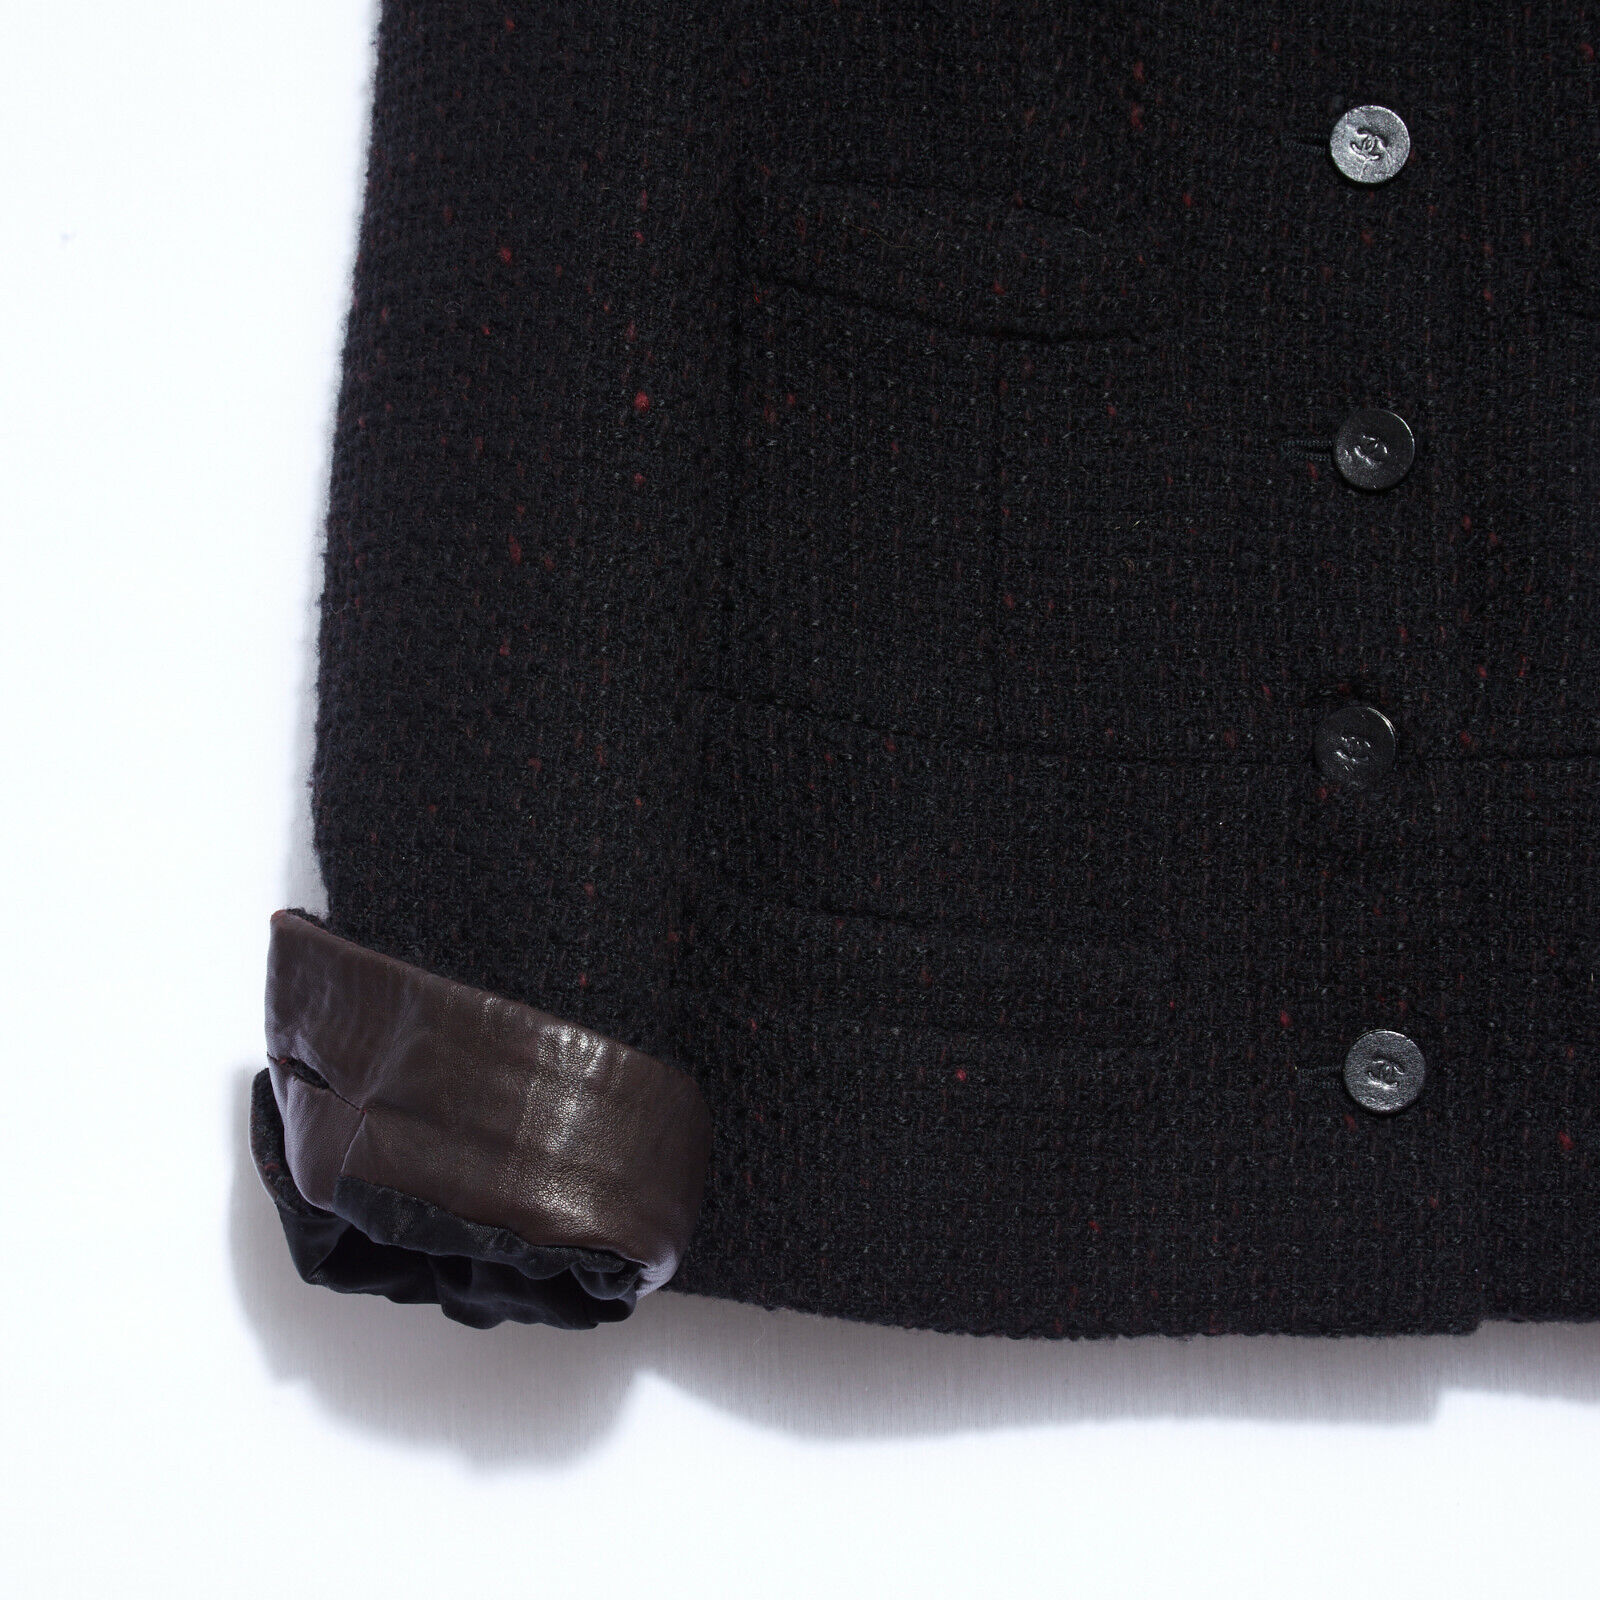 Chanel veste jacket classique black tweed fr40